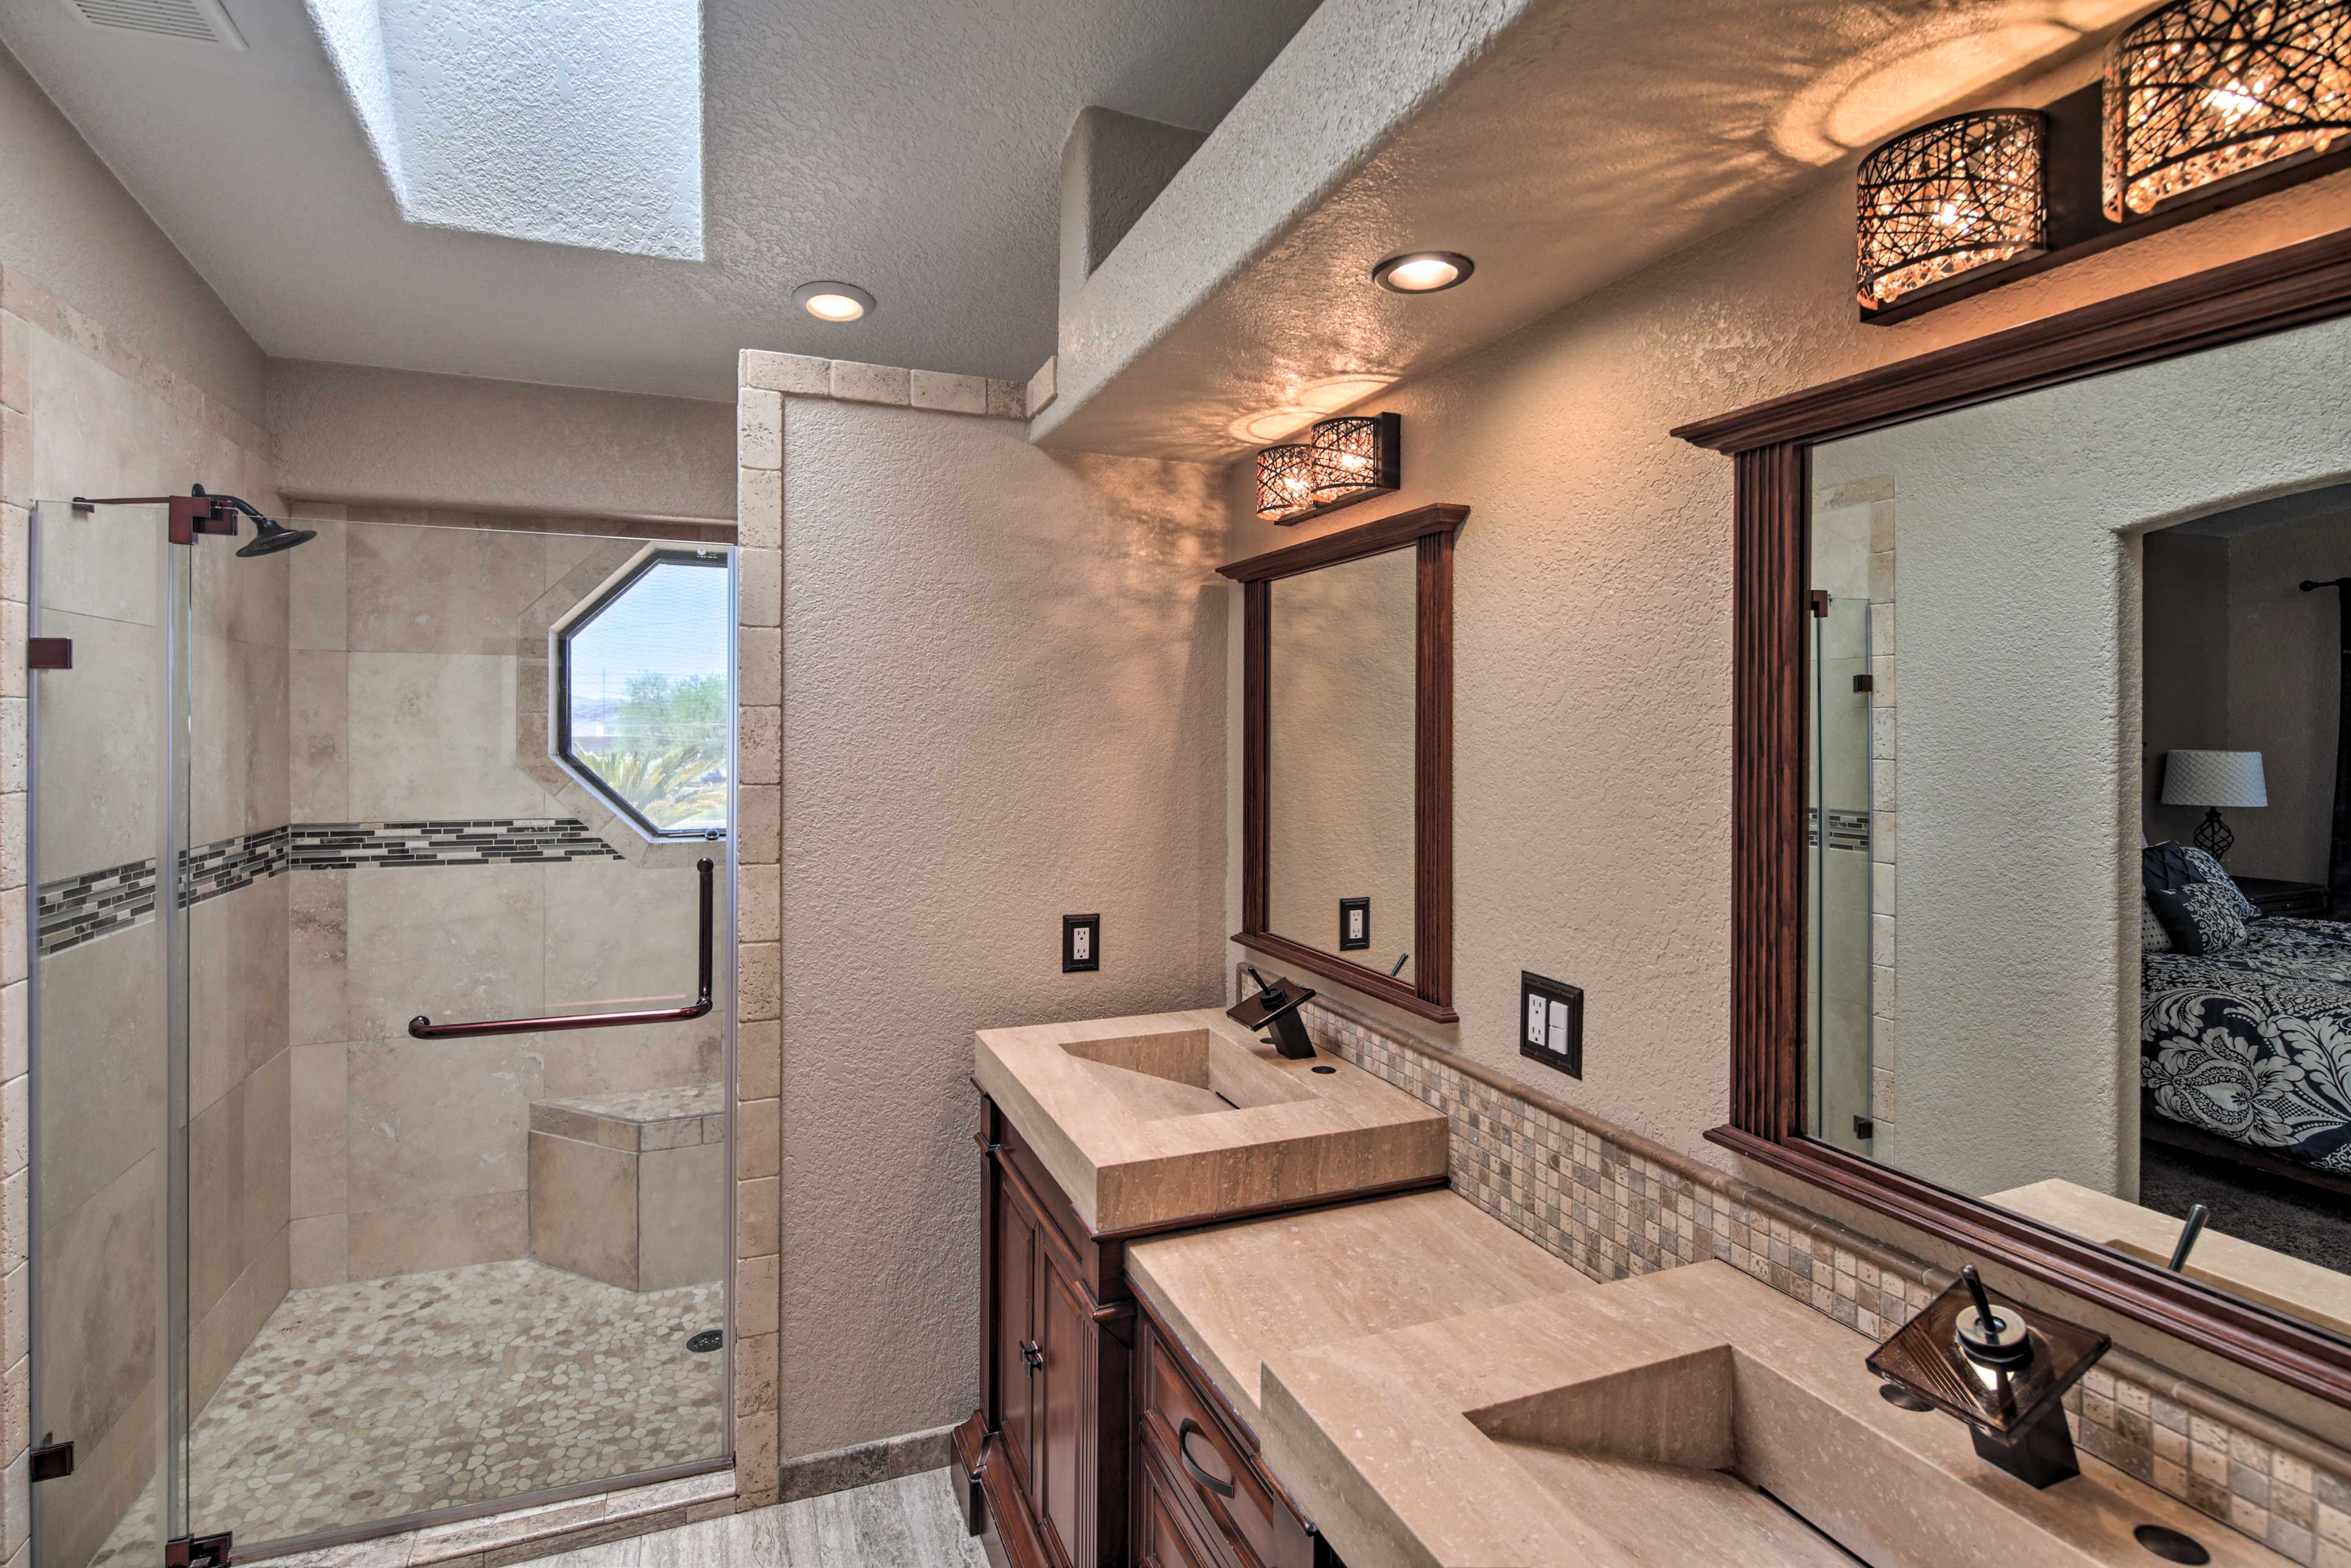 The upscale amenities continue in the en-suite bath!